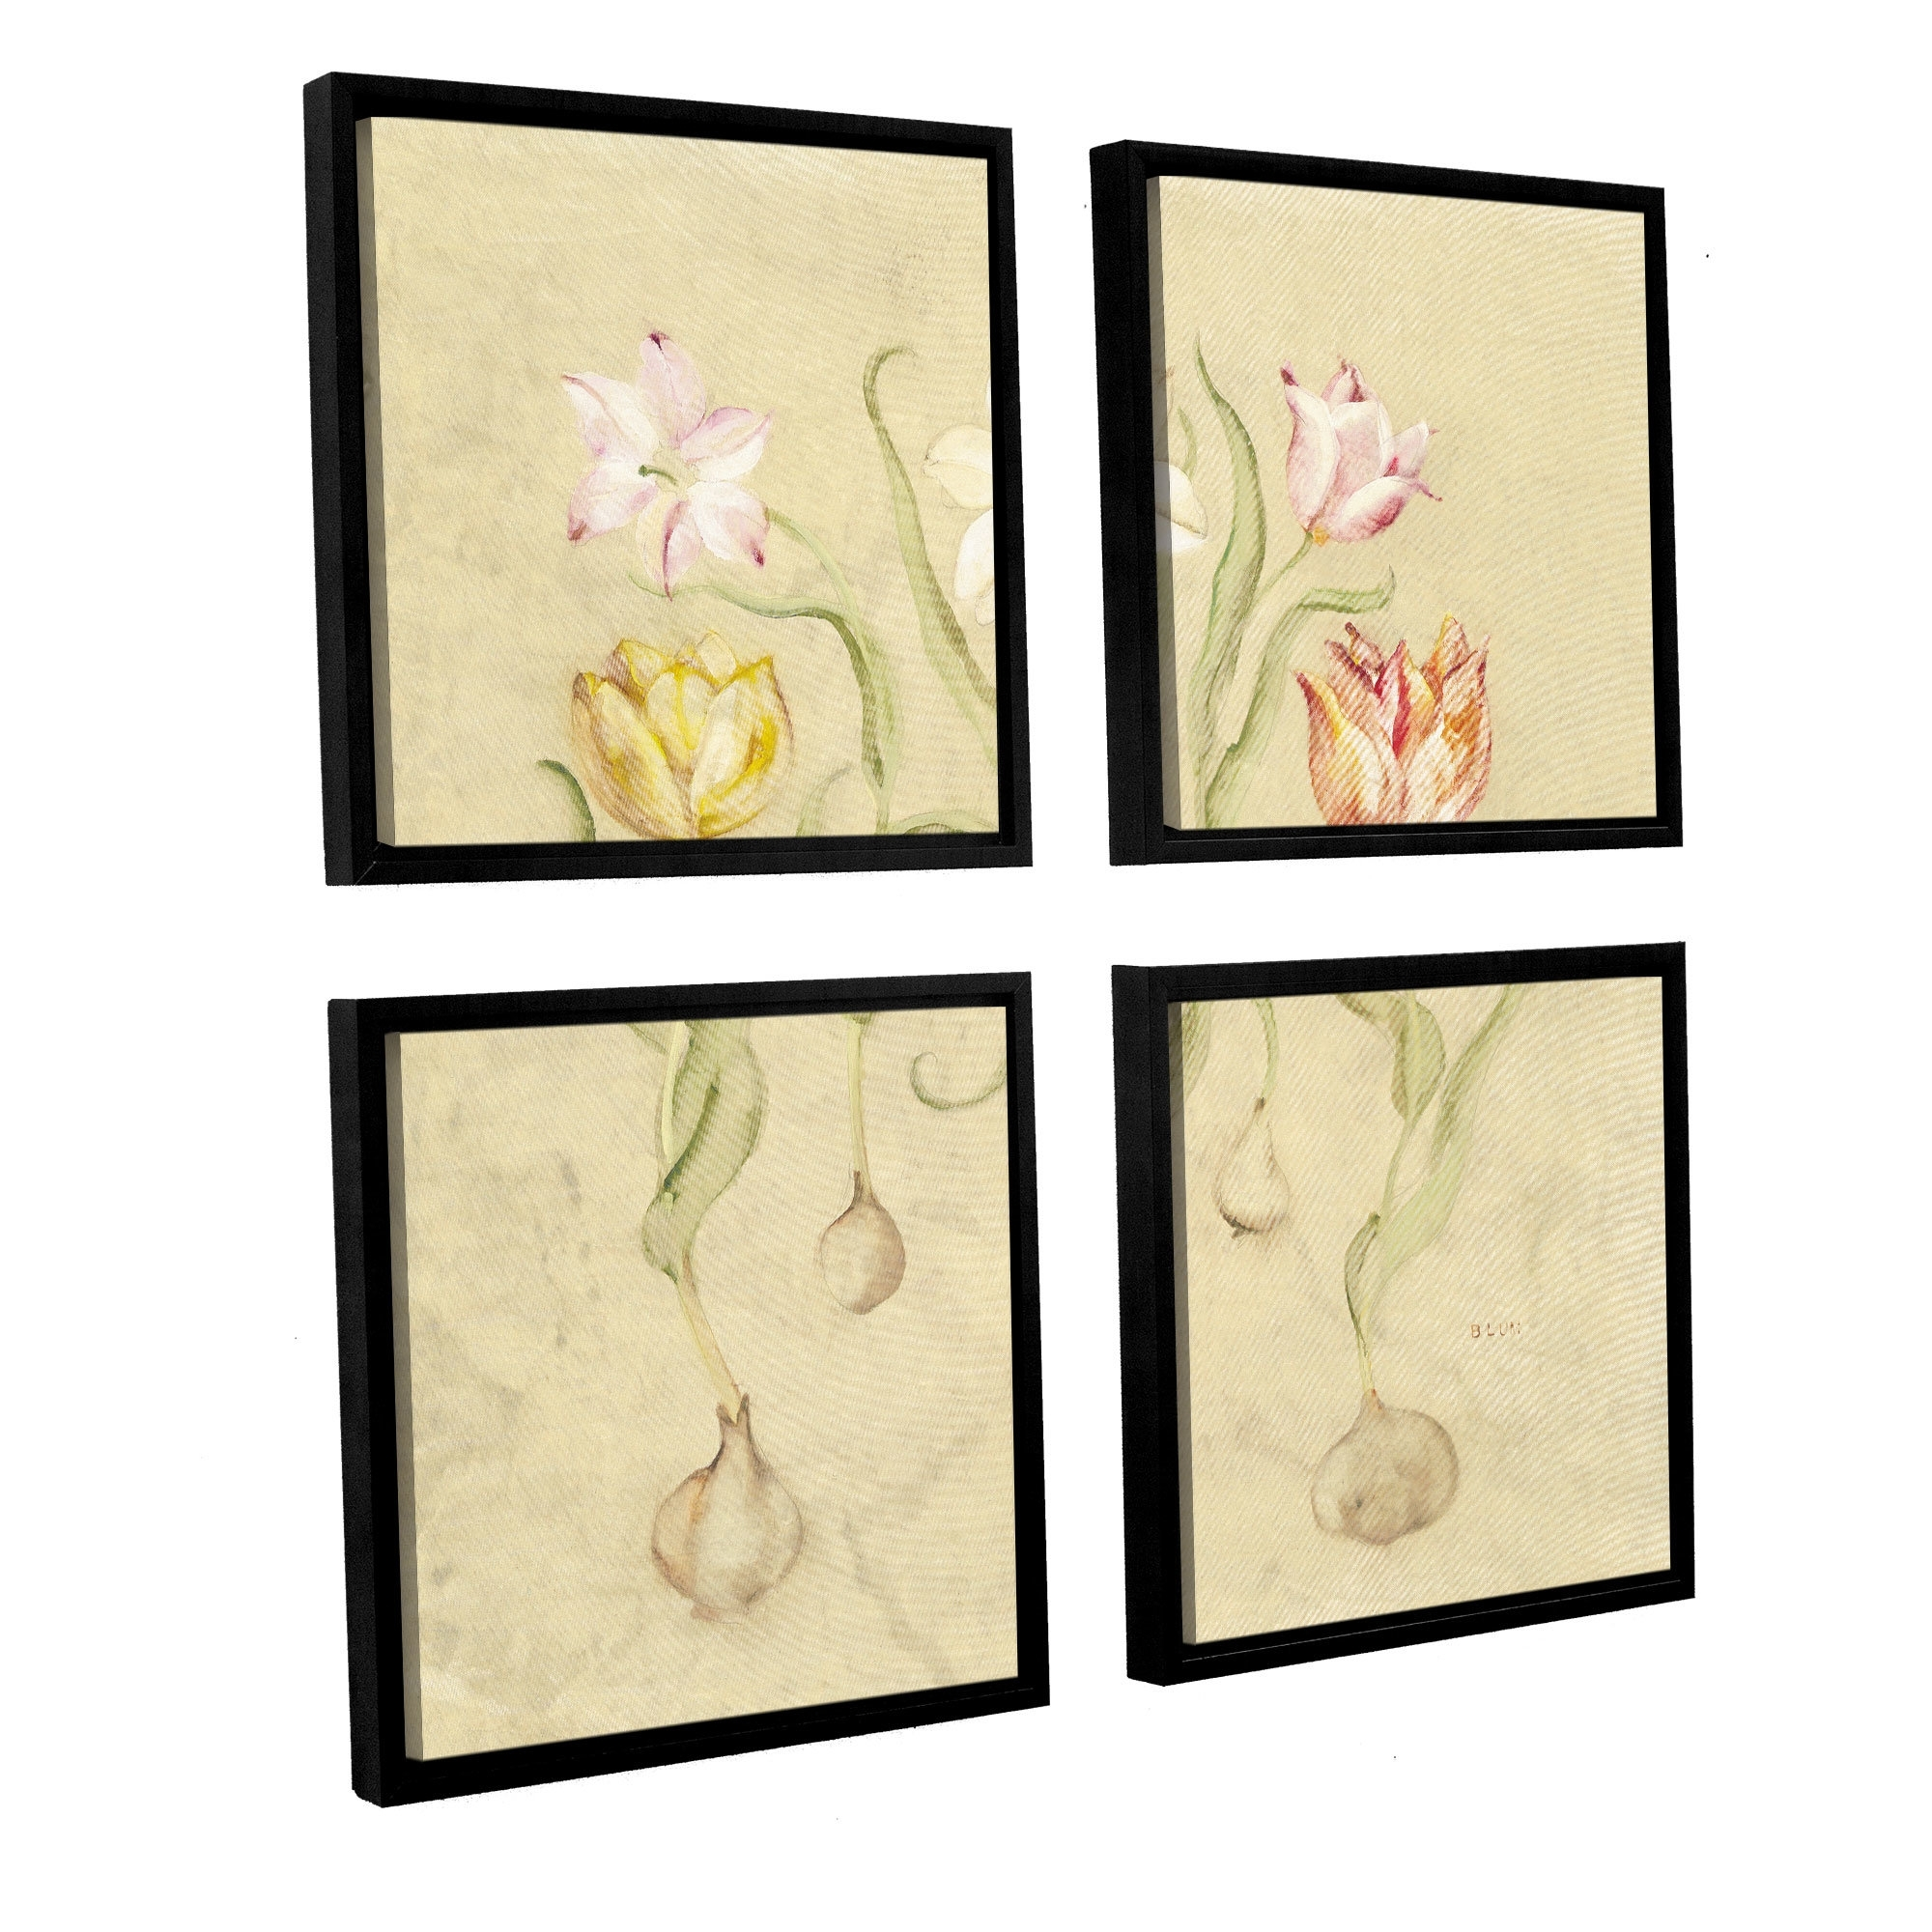 Artwall 'dancing Bulbs I'cheri Blum 4 Piece Framed Pertaining To 2018 Cheri Blum Framed Art Prints (View 5 of 15)